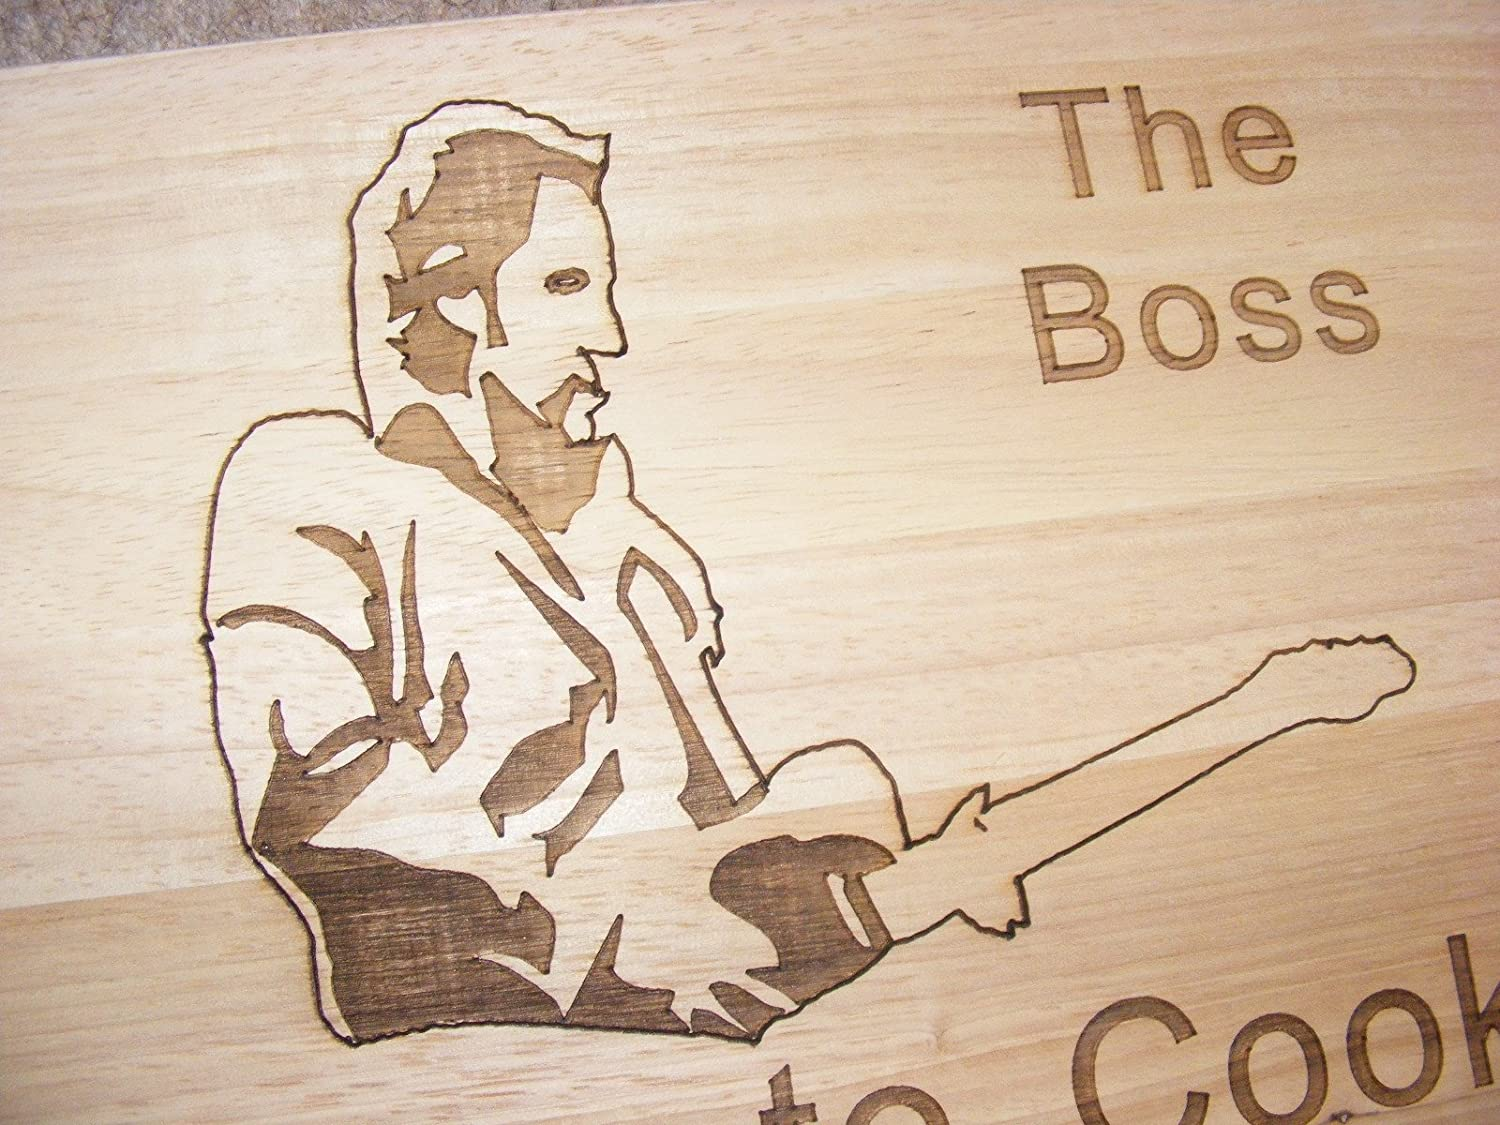 BRUCE SPRINGSTEEN THE BOSS BORN TO COOK GIFT IDEA BAMBOO WOOD CHOPPING CUTTING CHEESE BOARD PLACE MAT COOK LOVE ME TENDER ENGRAVED WOODEN NOVELTY WOOD KITCHEN COOKING BAKING BIRTHDAY PRESENT WOODEN WEDDING LASER ENGRAVED by FASTCRAFT UK (Premium Hardwood